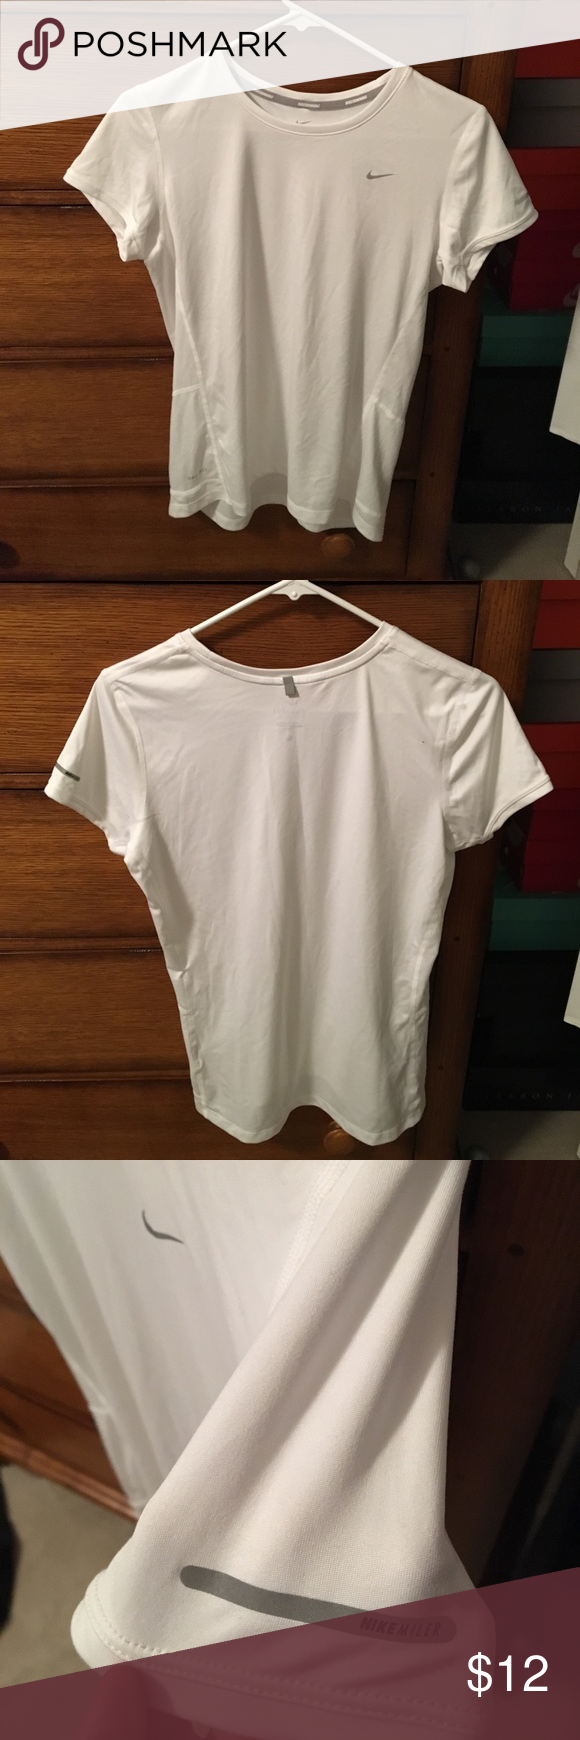 Nike dry-fit tee Lightly used Nike dry-fit athletic tee. Still looks shiny white. 100% recycled polyester. Happy poshing😋👍 Nike Shirts Tees - Short Sleeve